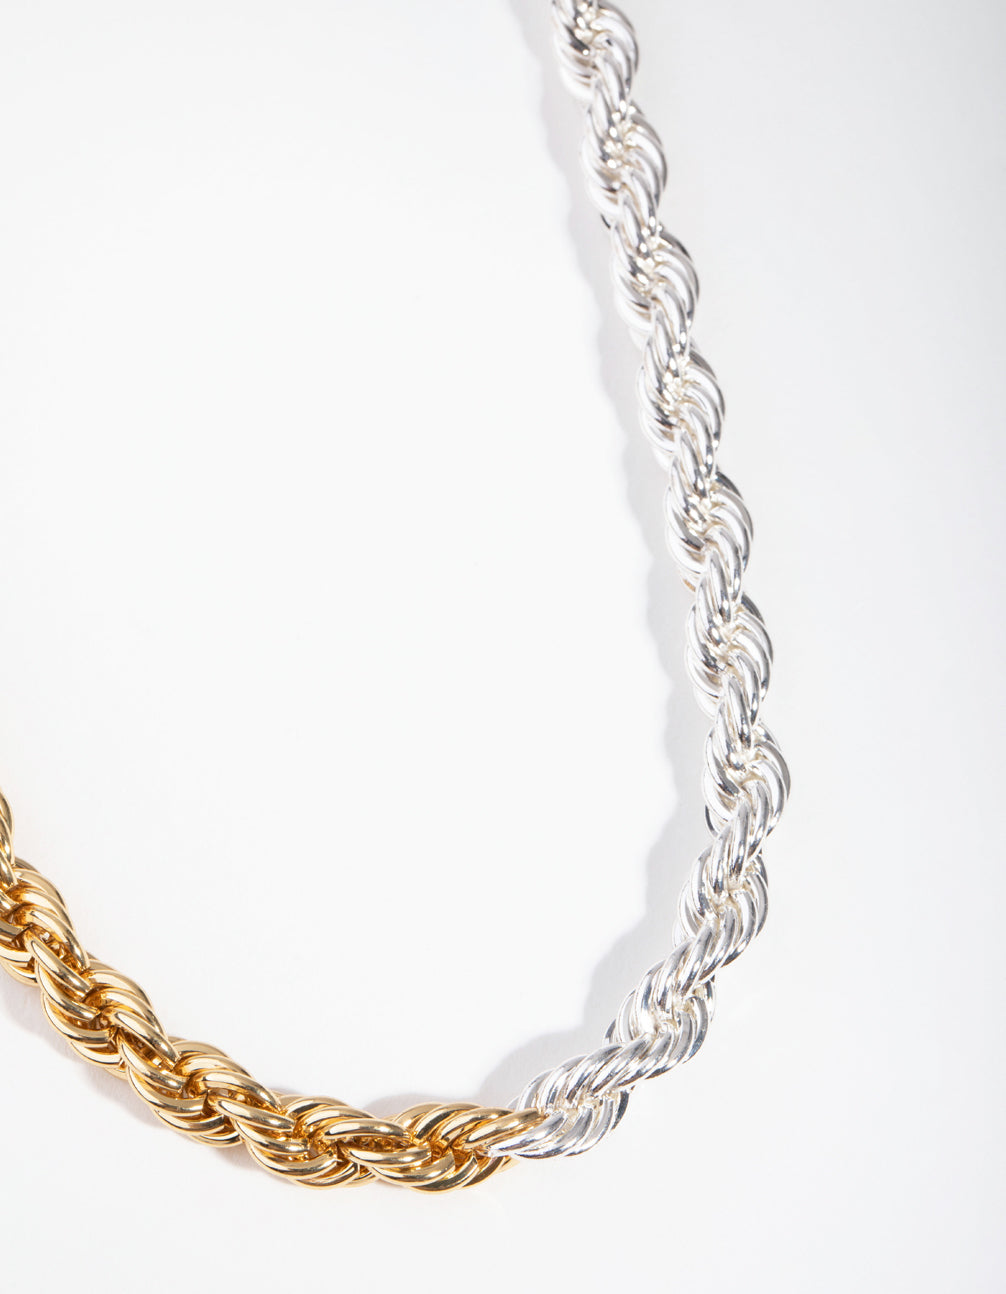 Real Gold and Silver Plated 45cm Rope Necklace